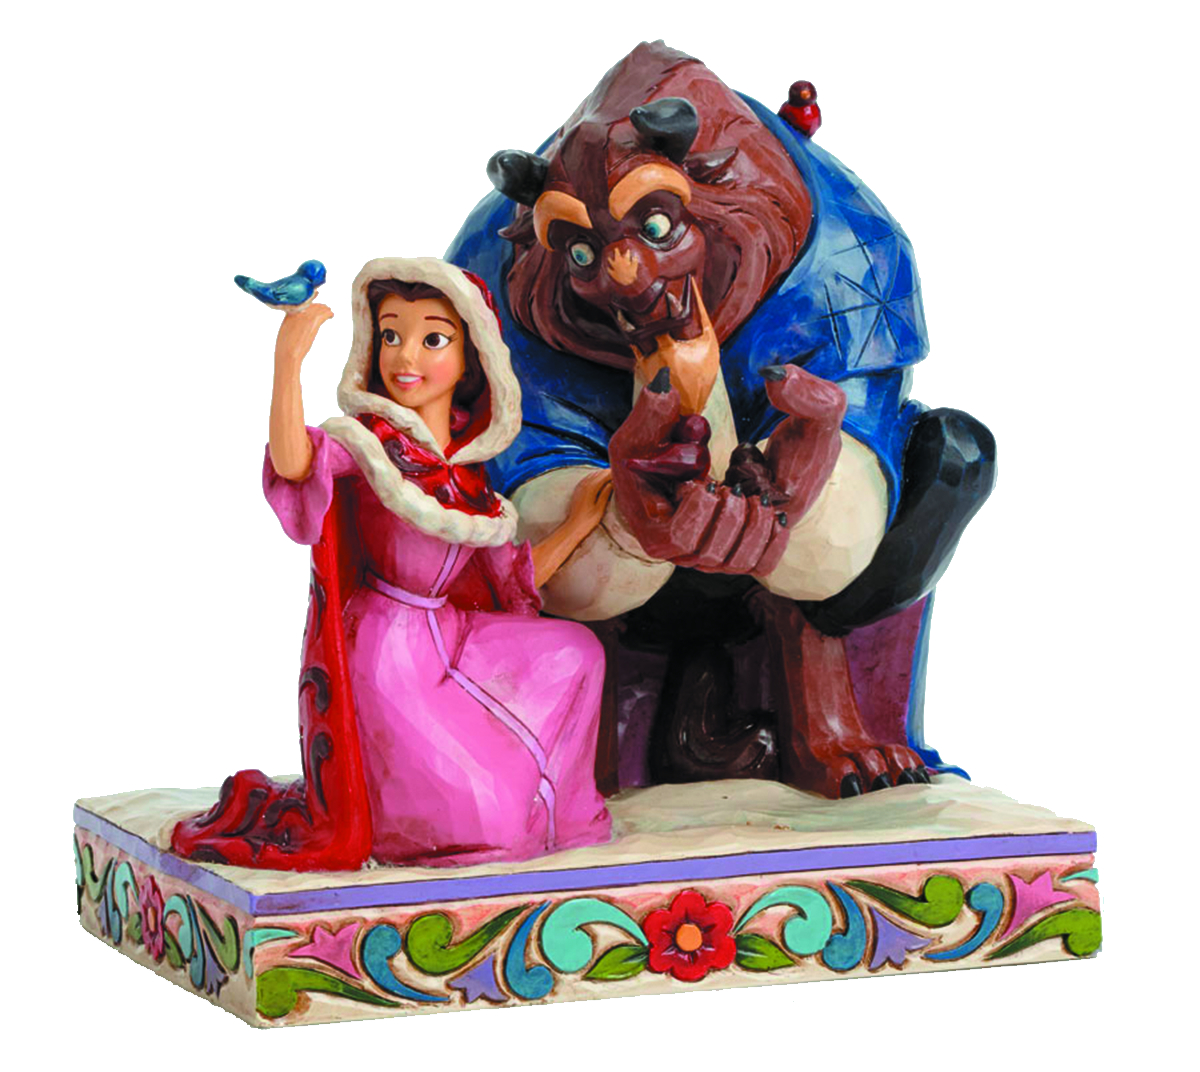 DISNEY TRADITIONS BELLE & THE BEAST IN WINTER